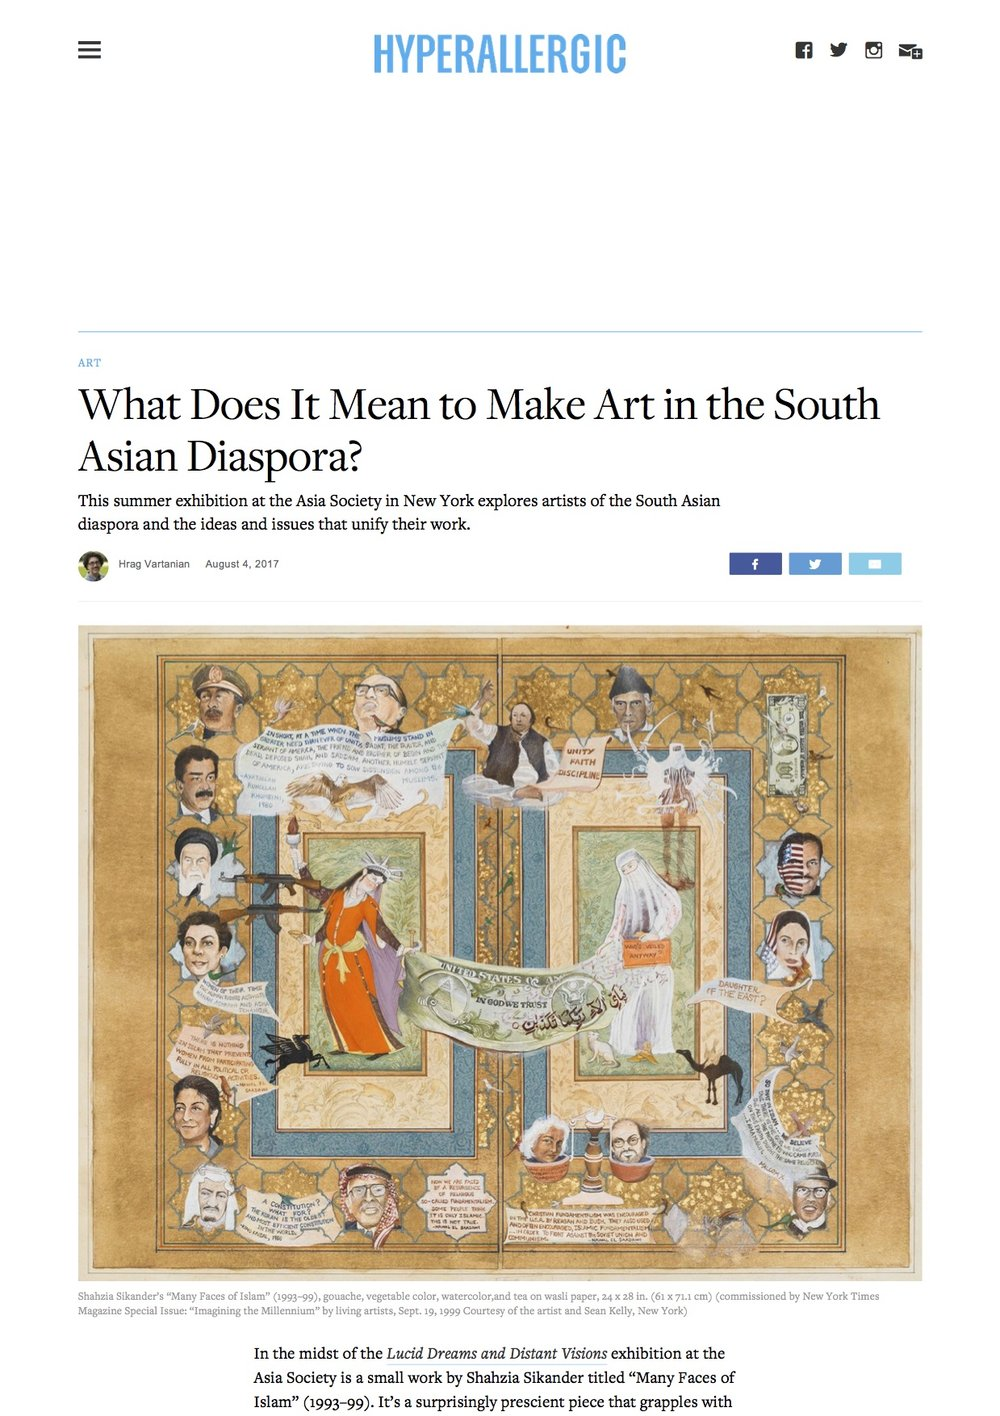 what does it mean to make art in the south asian diaspora_.jpg